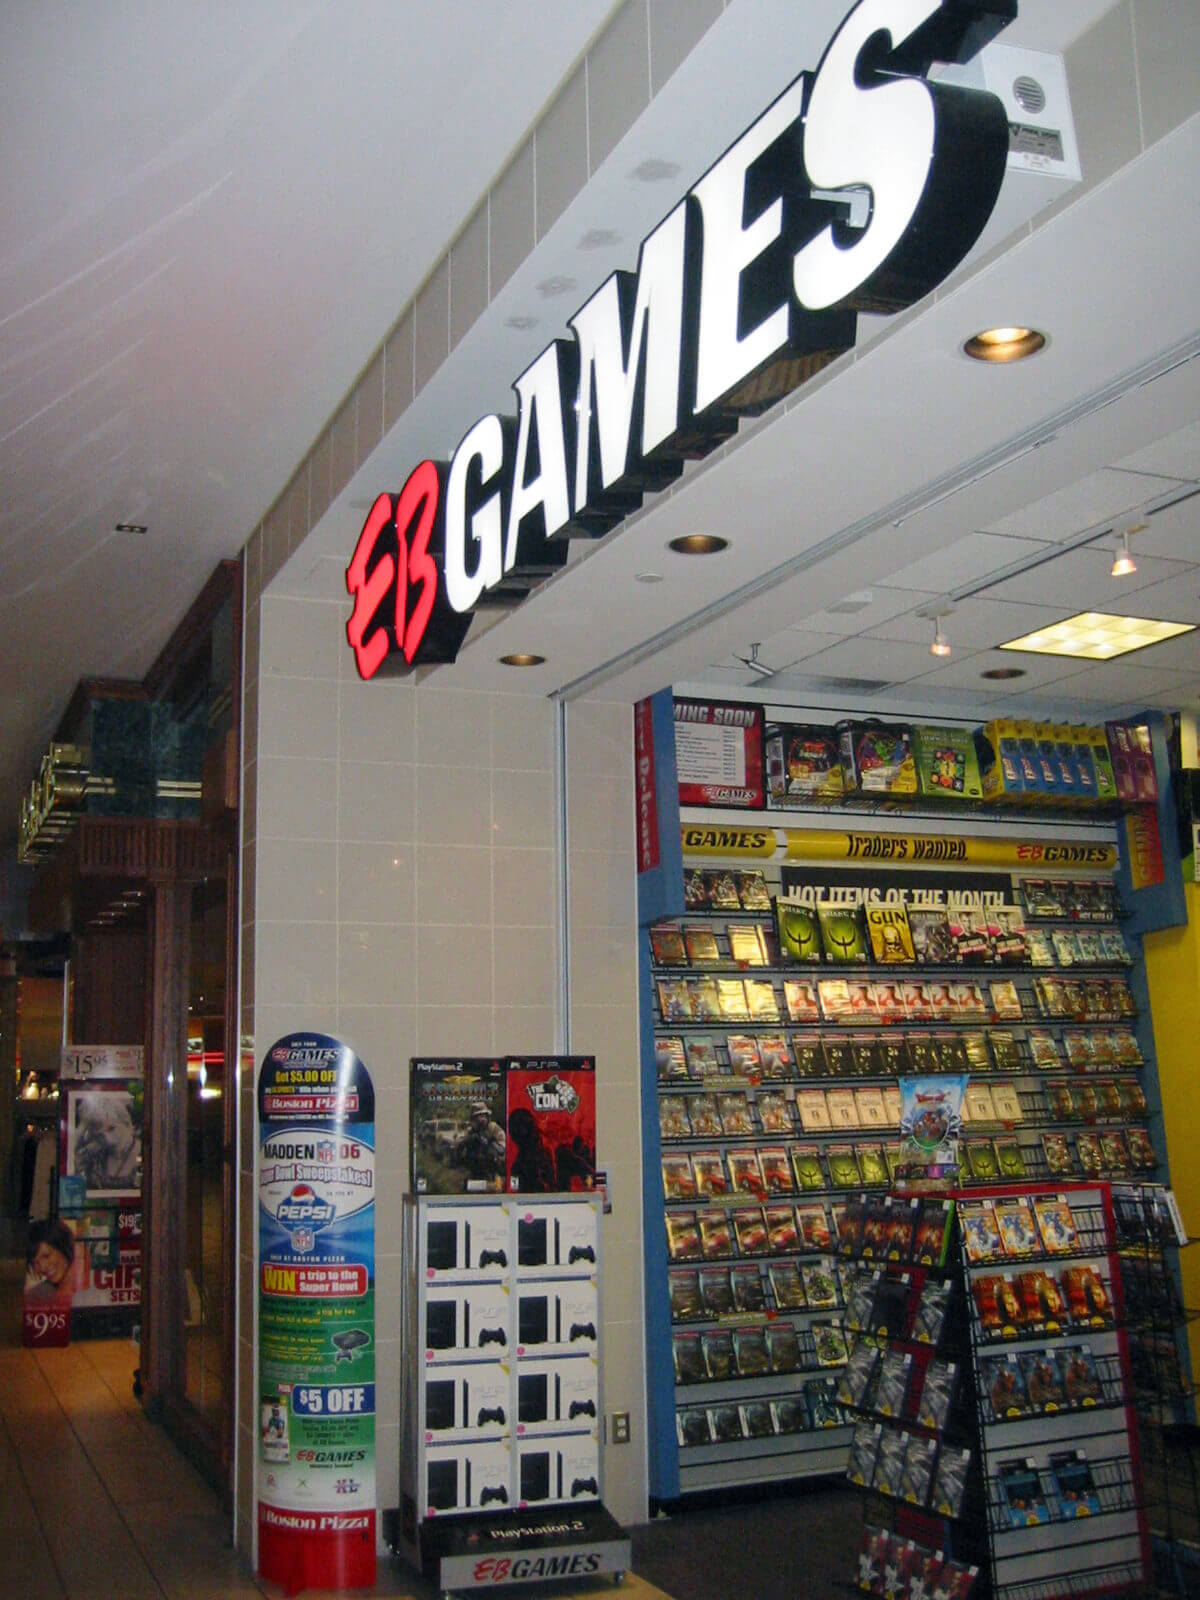 EB GAMES STORE FRONT MALL.ADJ